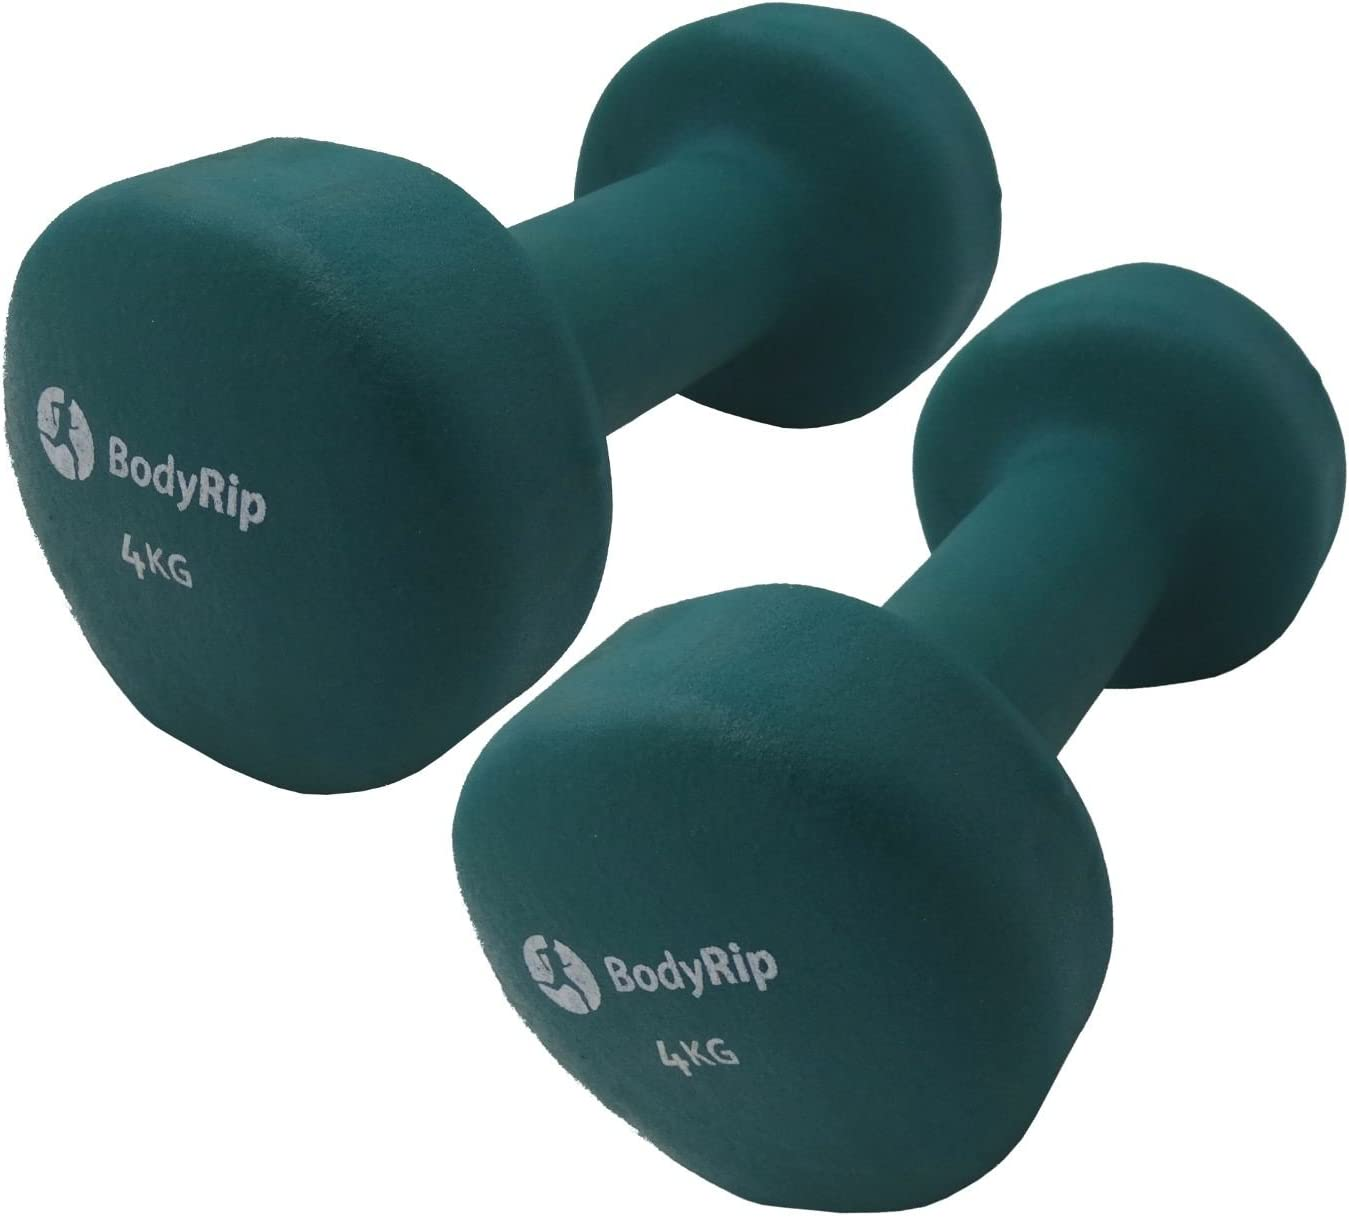 Unisex Neoprene Dumbbells Anti Roll Hex Design Hand or Arm Free Weights 1 Pair | Slim Healthy Active Fitness Exercise Workout Tone Muscle Lean Body for Men /& Women